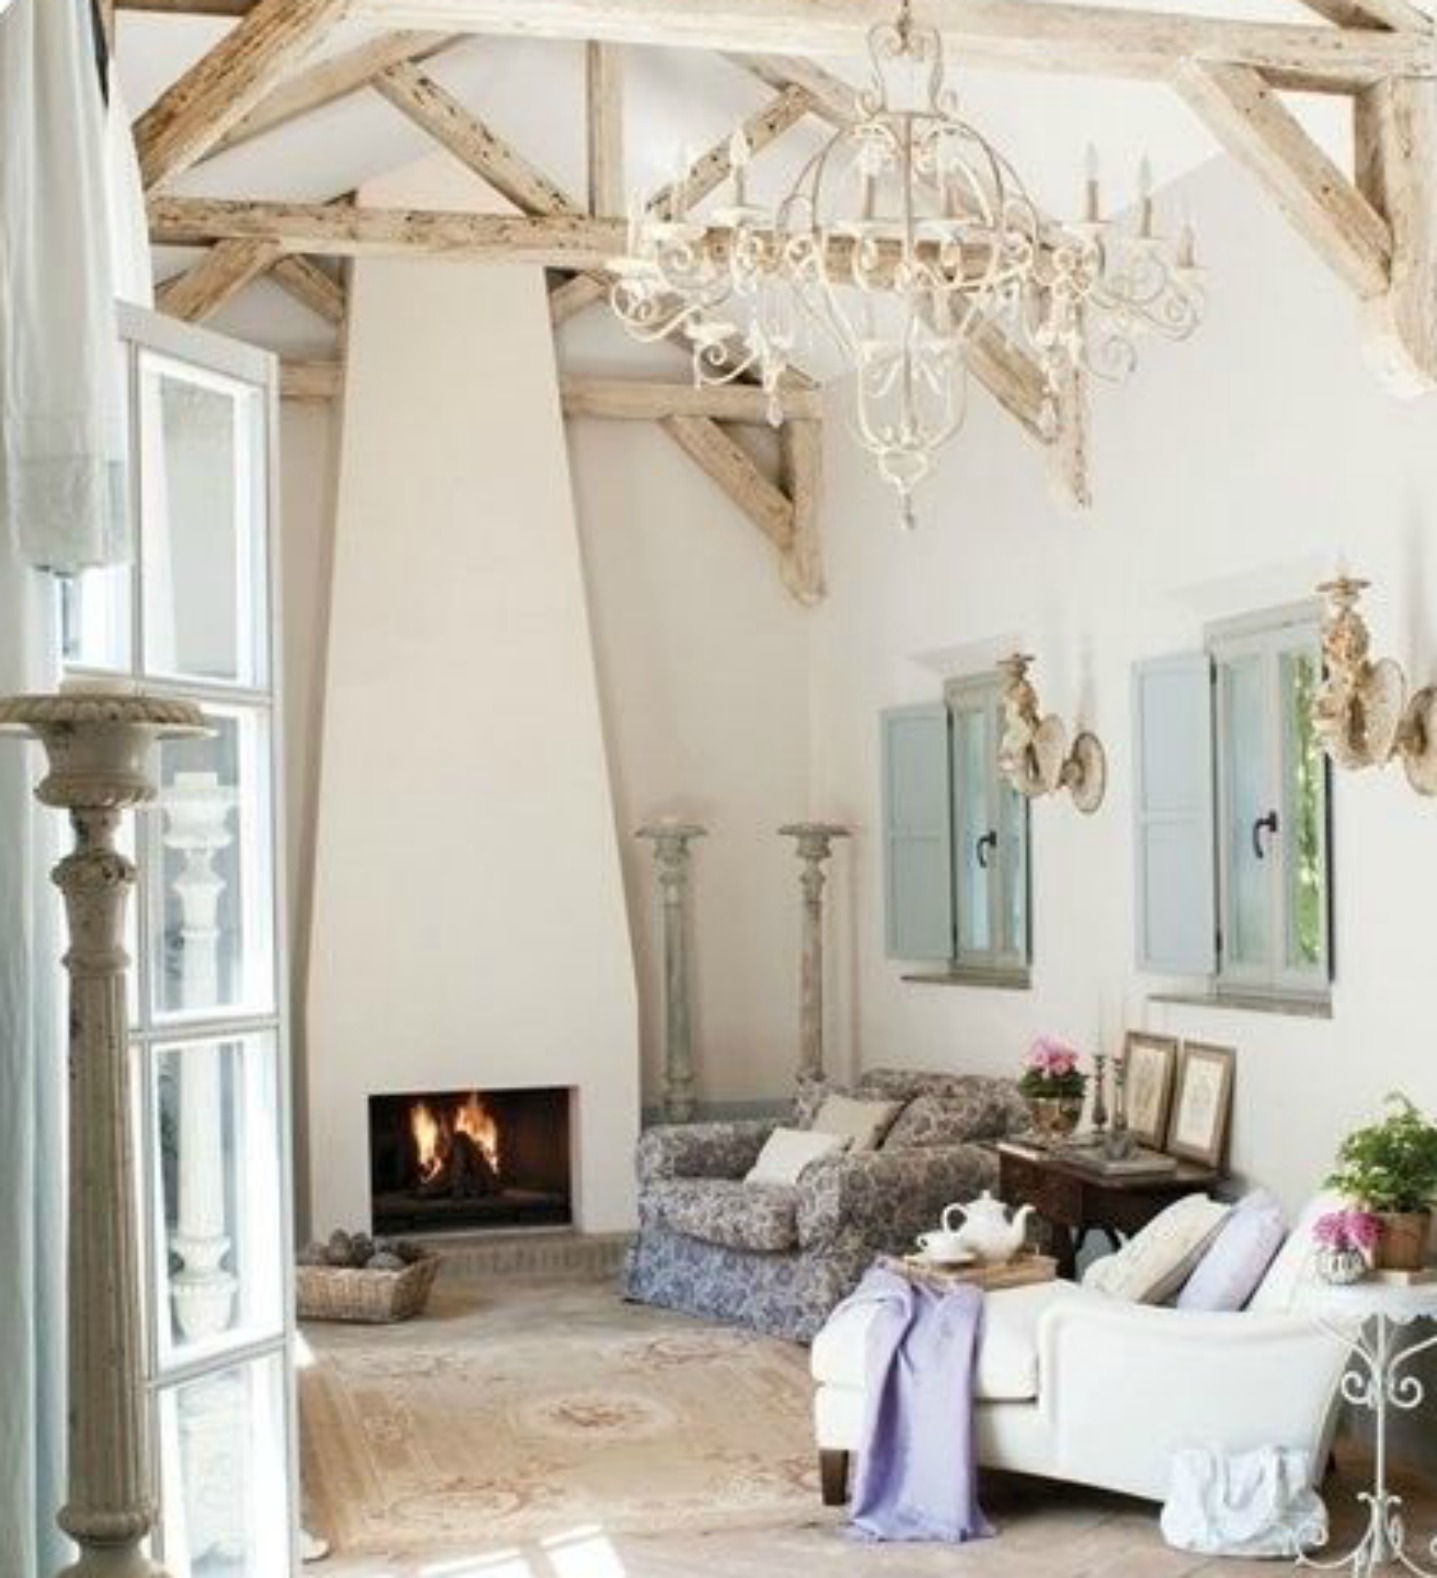 Lofty #Frenchfarmhouse living room with grand chandelier, ceiling trusses, and minimal modern fireplace